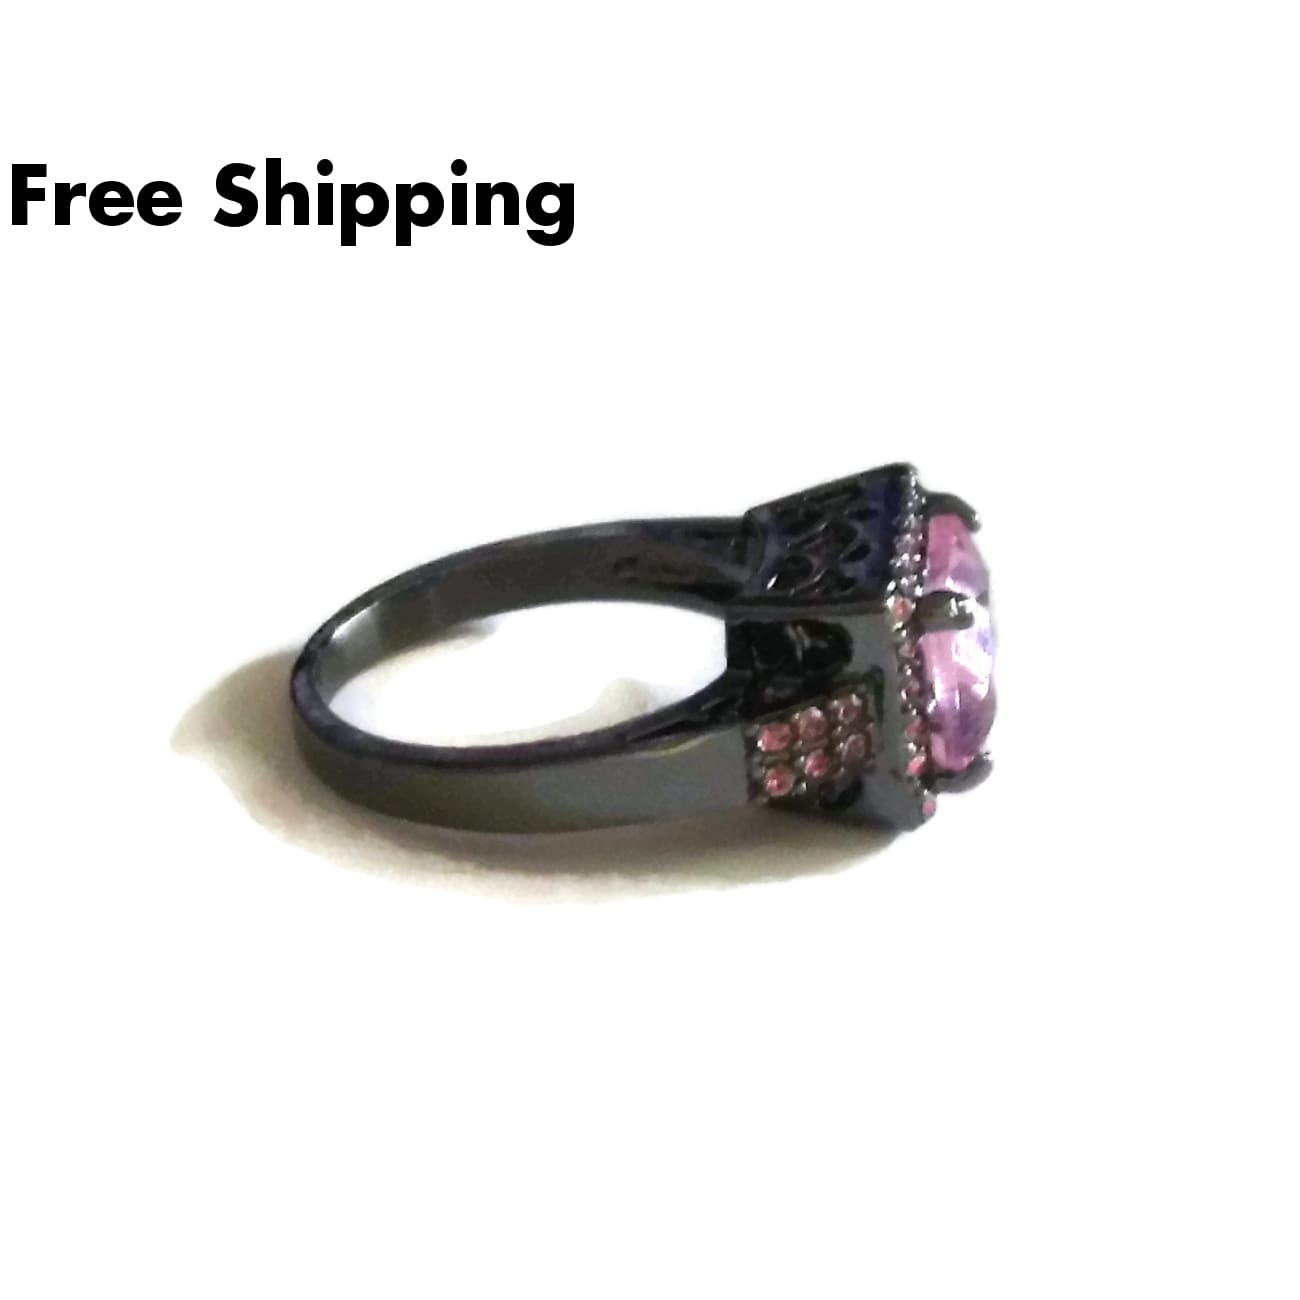 Plus Size Elegance Pink Topaz 35 Stone Gunmetal Statement Ring Sz9 - New Arrival